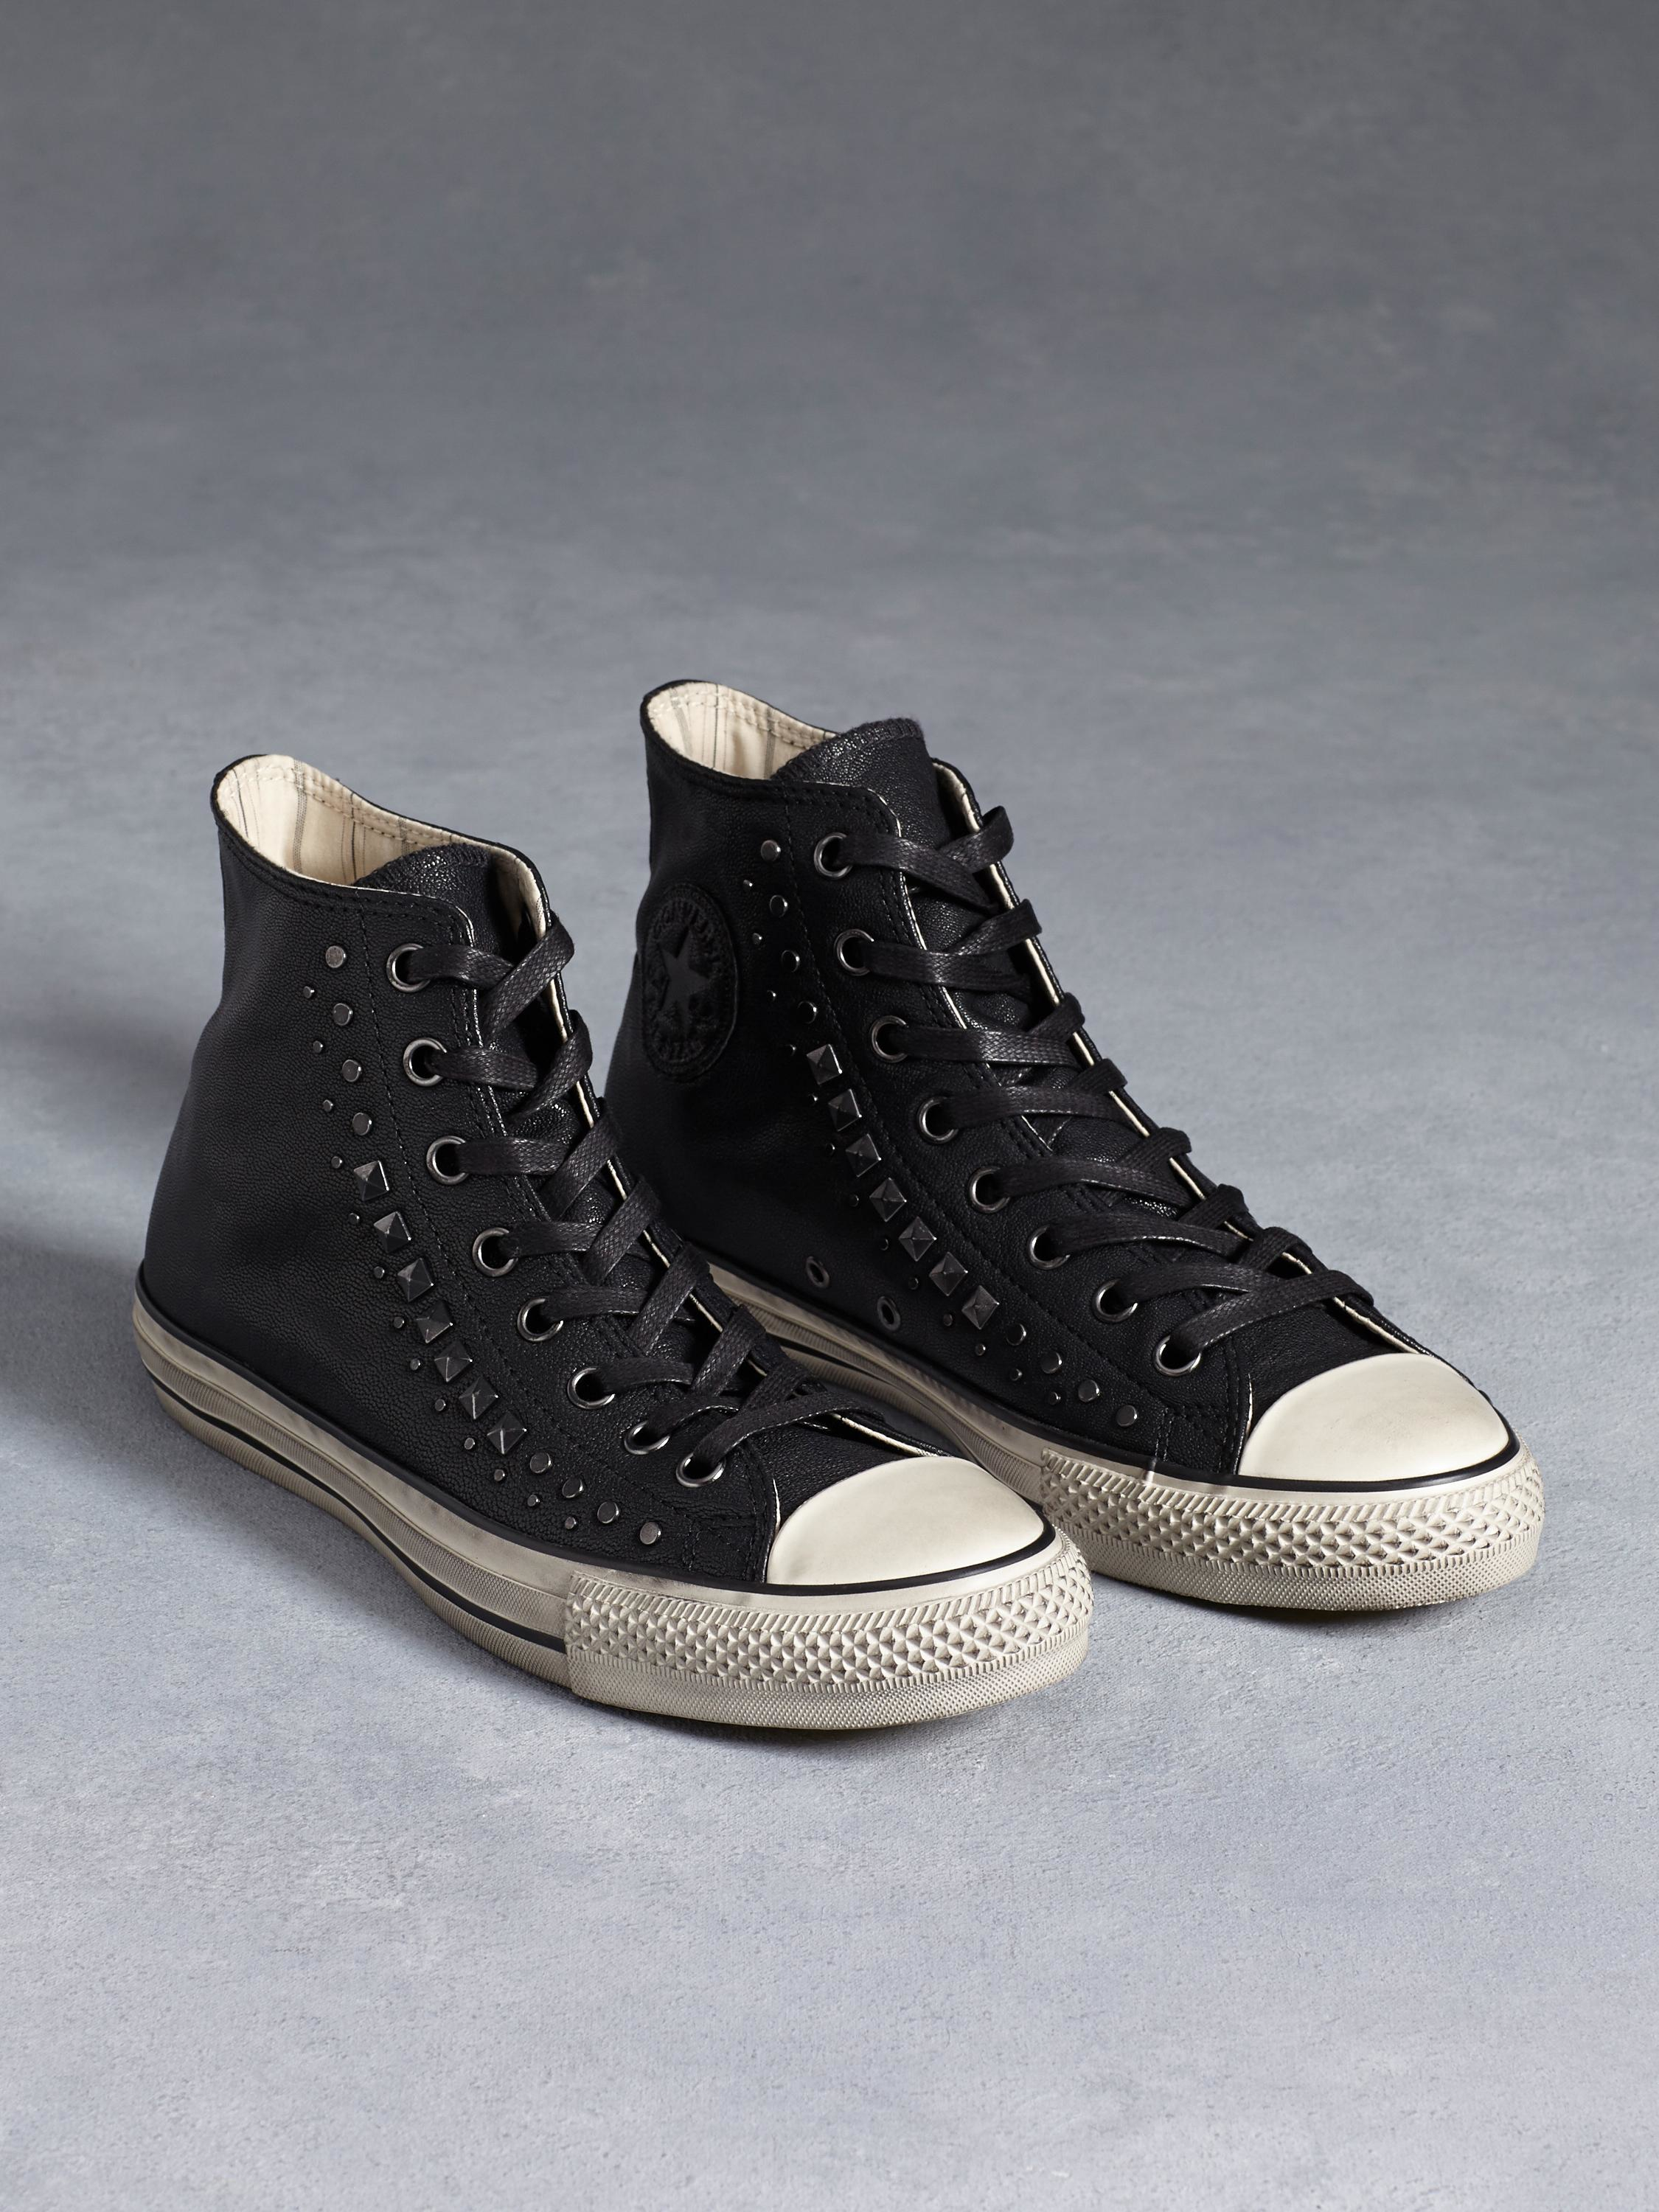 59f4a4c1f3c4 ... where can i buy john varvatos chuck taylor studded high top in black  for men lyst